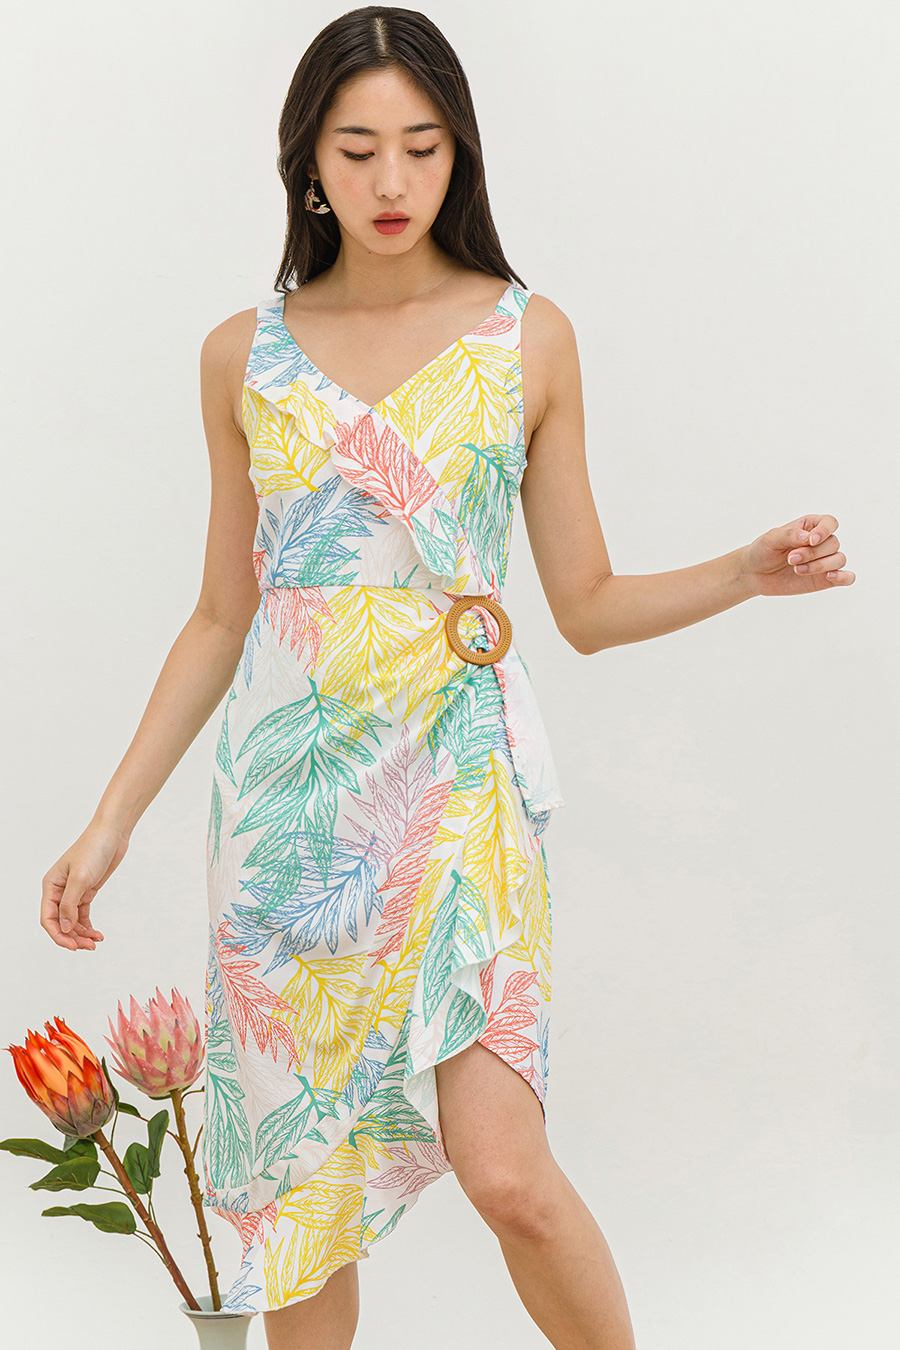 *SALE* LIZZIE DRESS - GARDEN OF EDEN [BY MODPARADE]